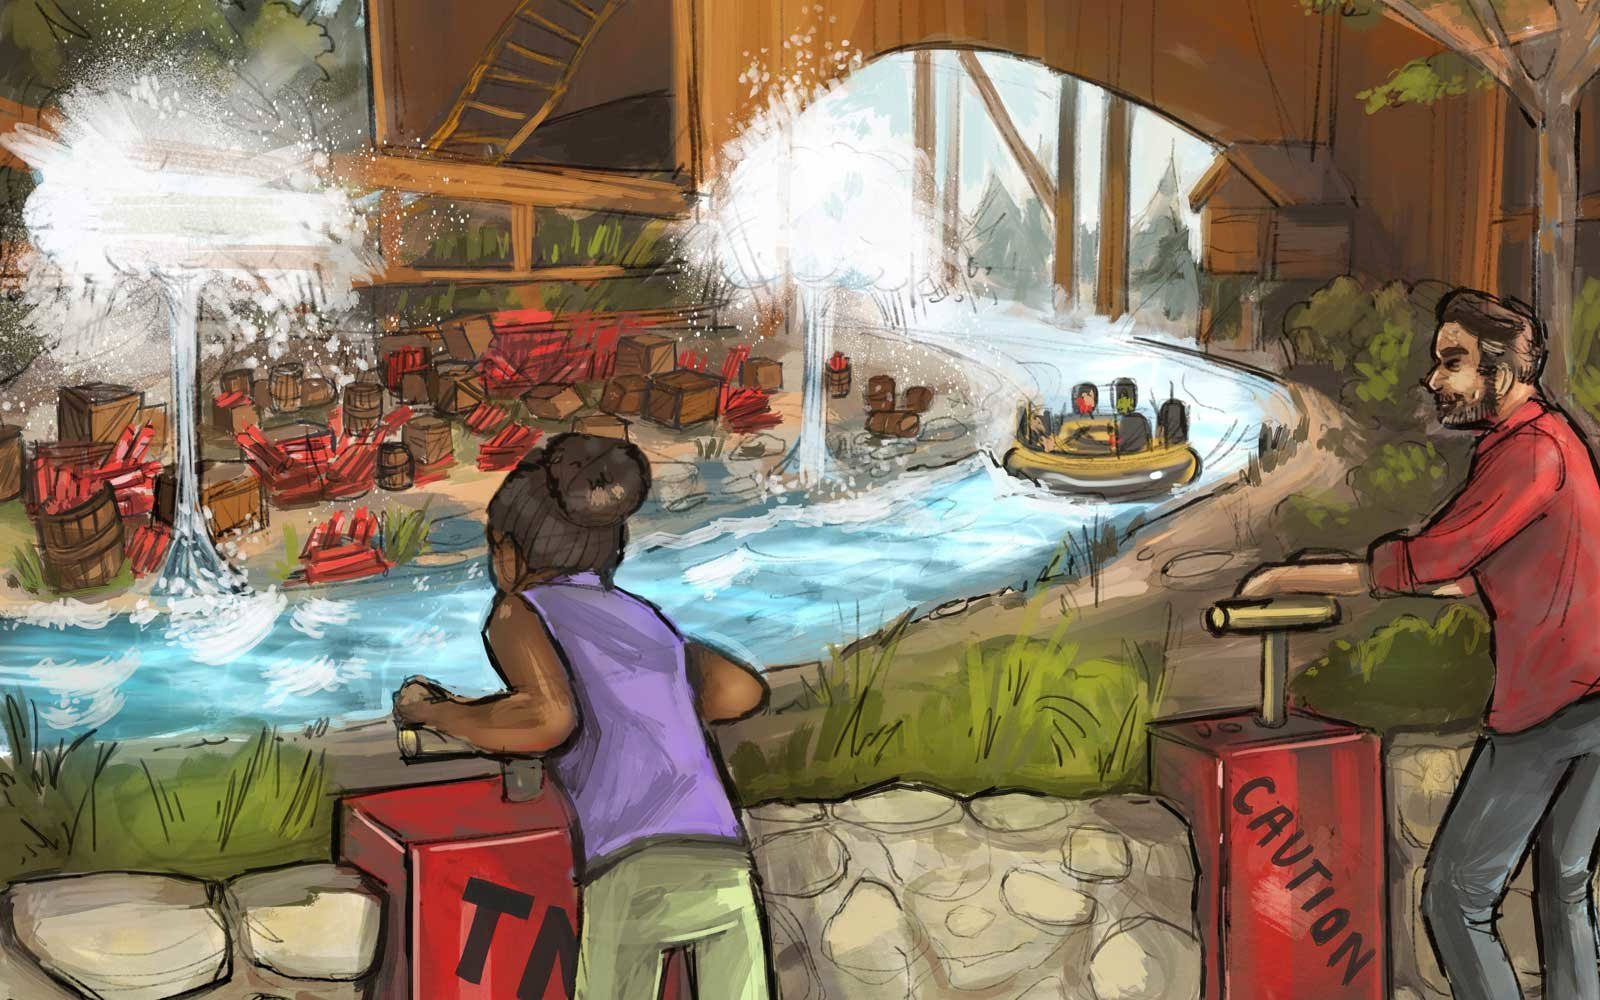 Calico River Rapids water ride coming to Knott's Berry Farm